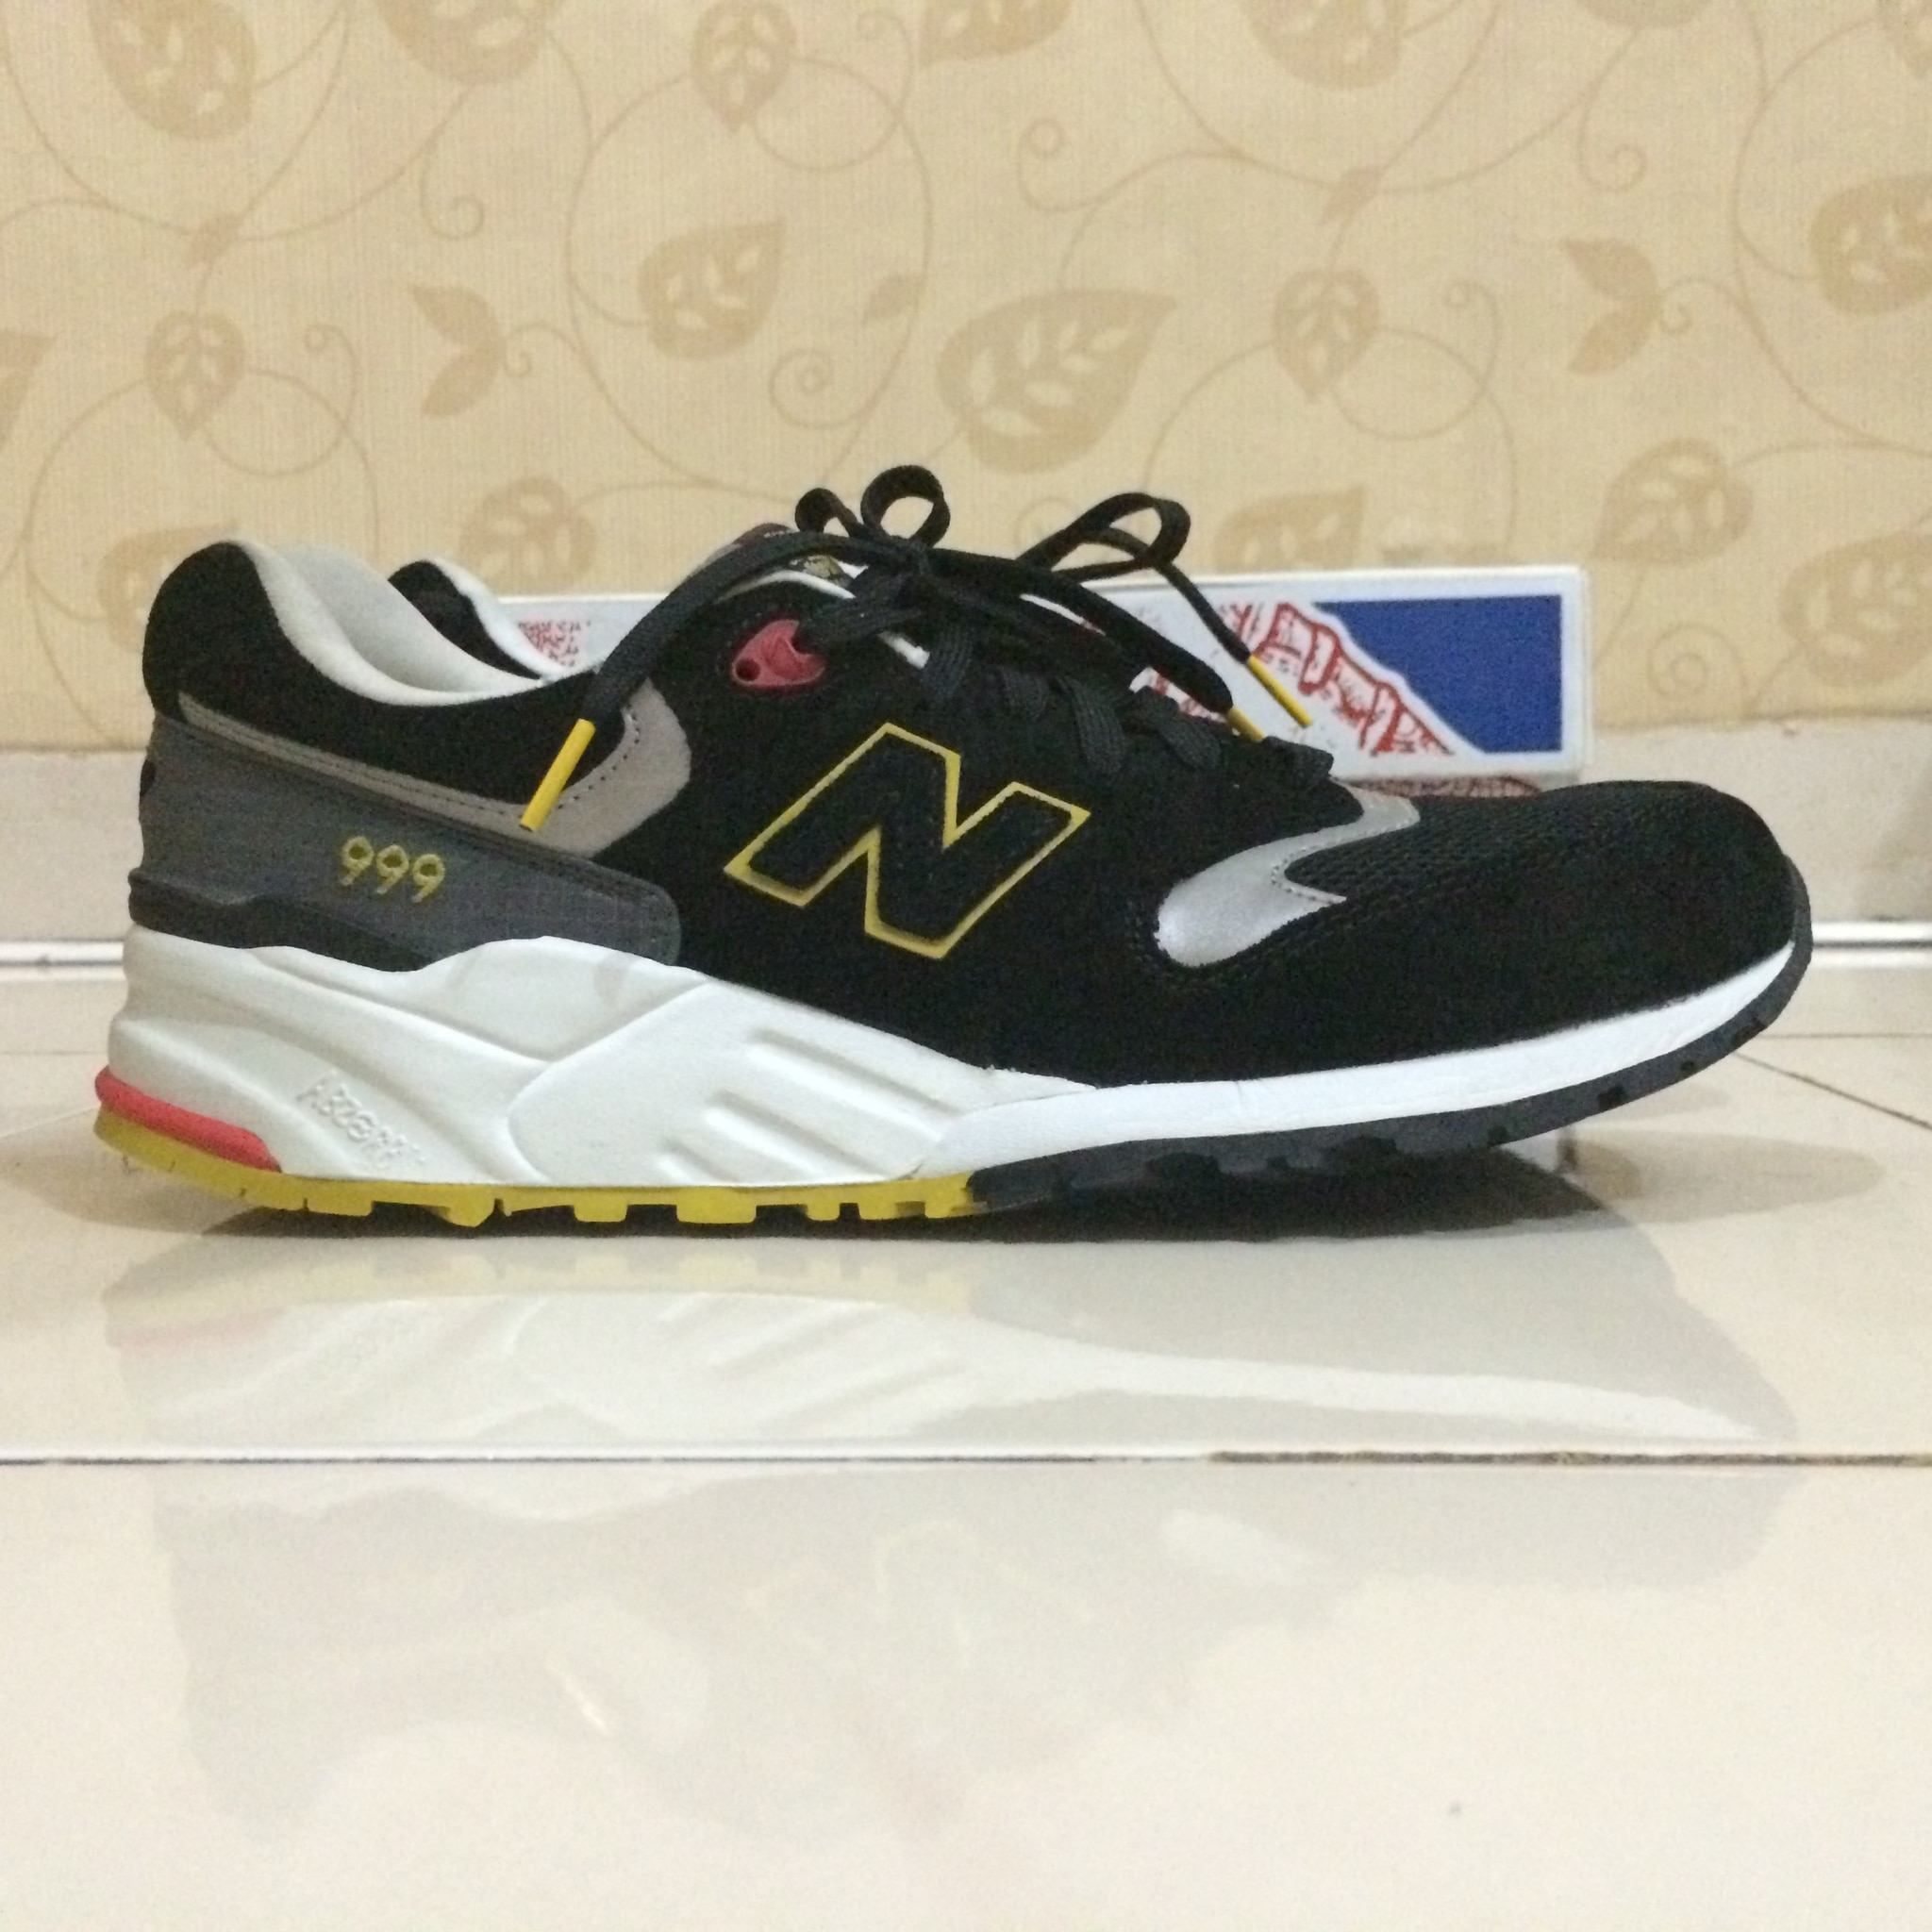 jual new balance 999 original